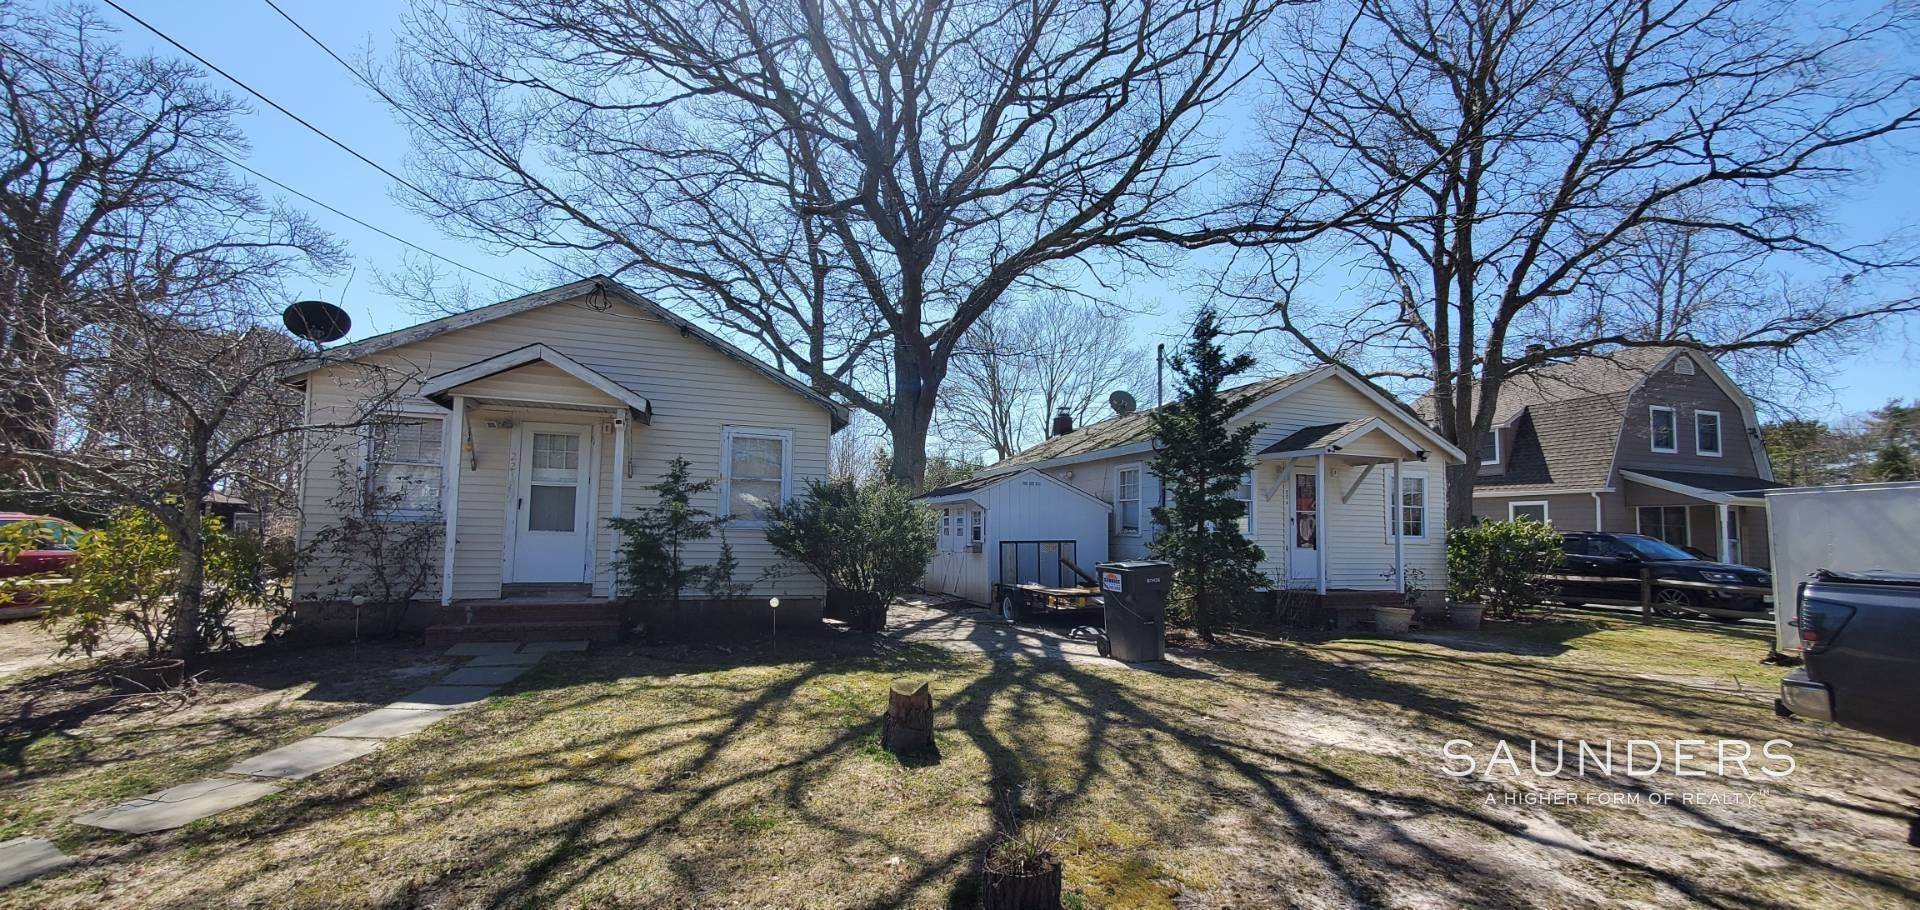 Single Family Homes for Sale at Income Producing Property In E. Quogue & Subdivision Opportunity 22 Vail Avenue, East Quogue, Southampton Town, NY 11942